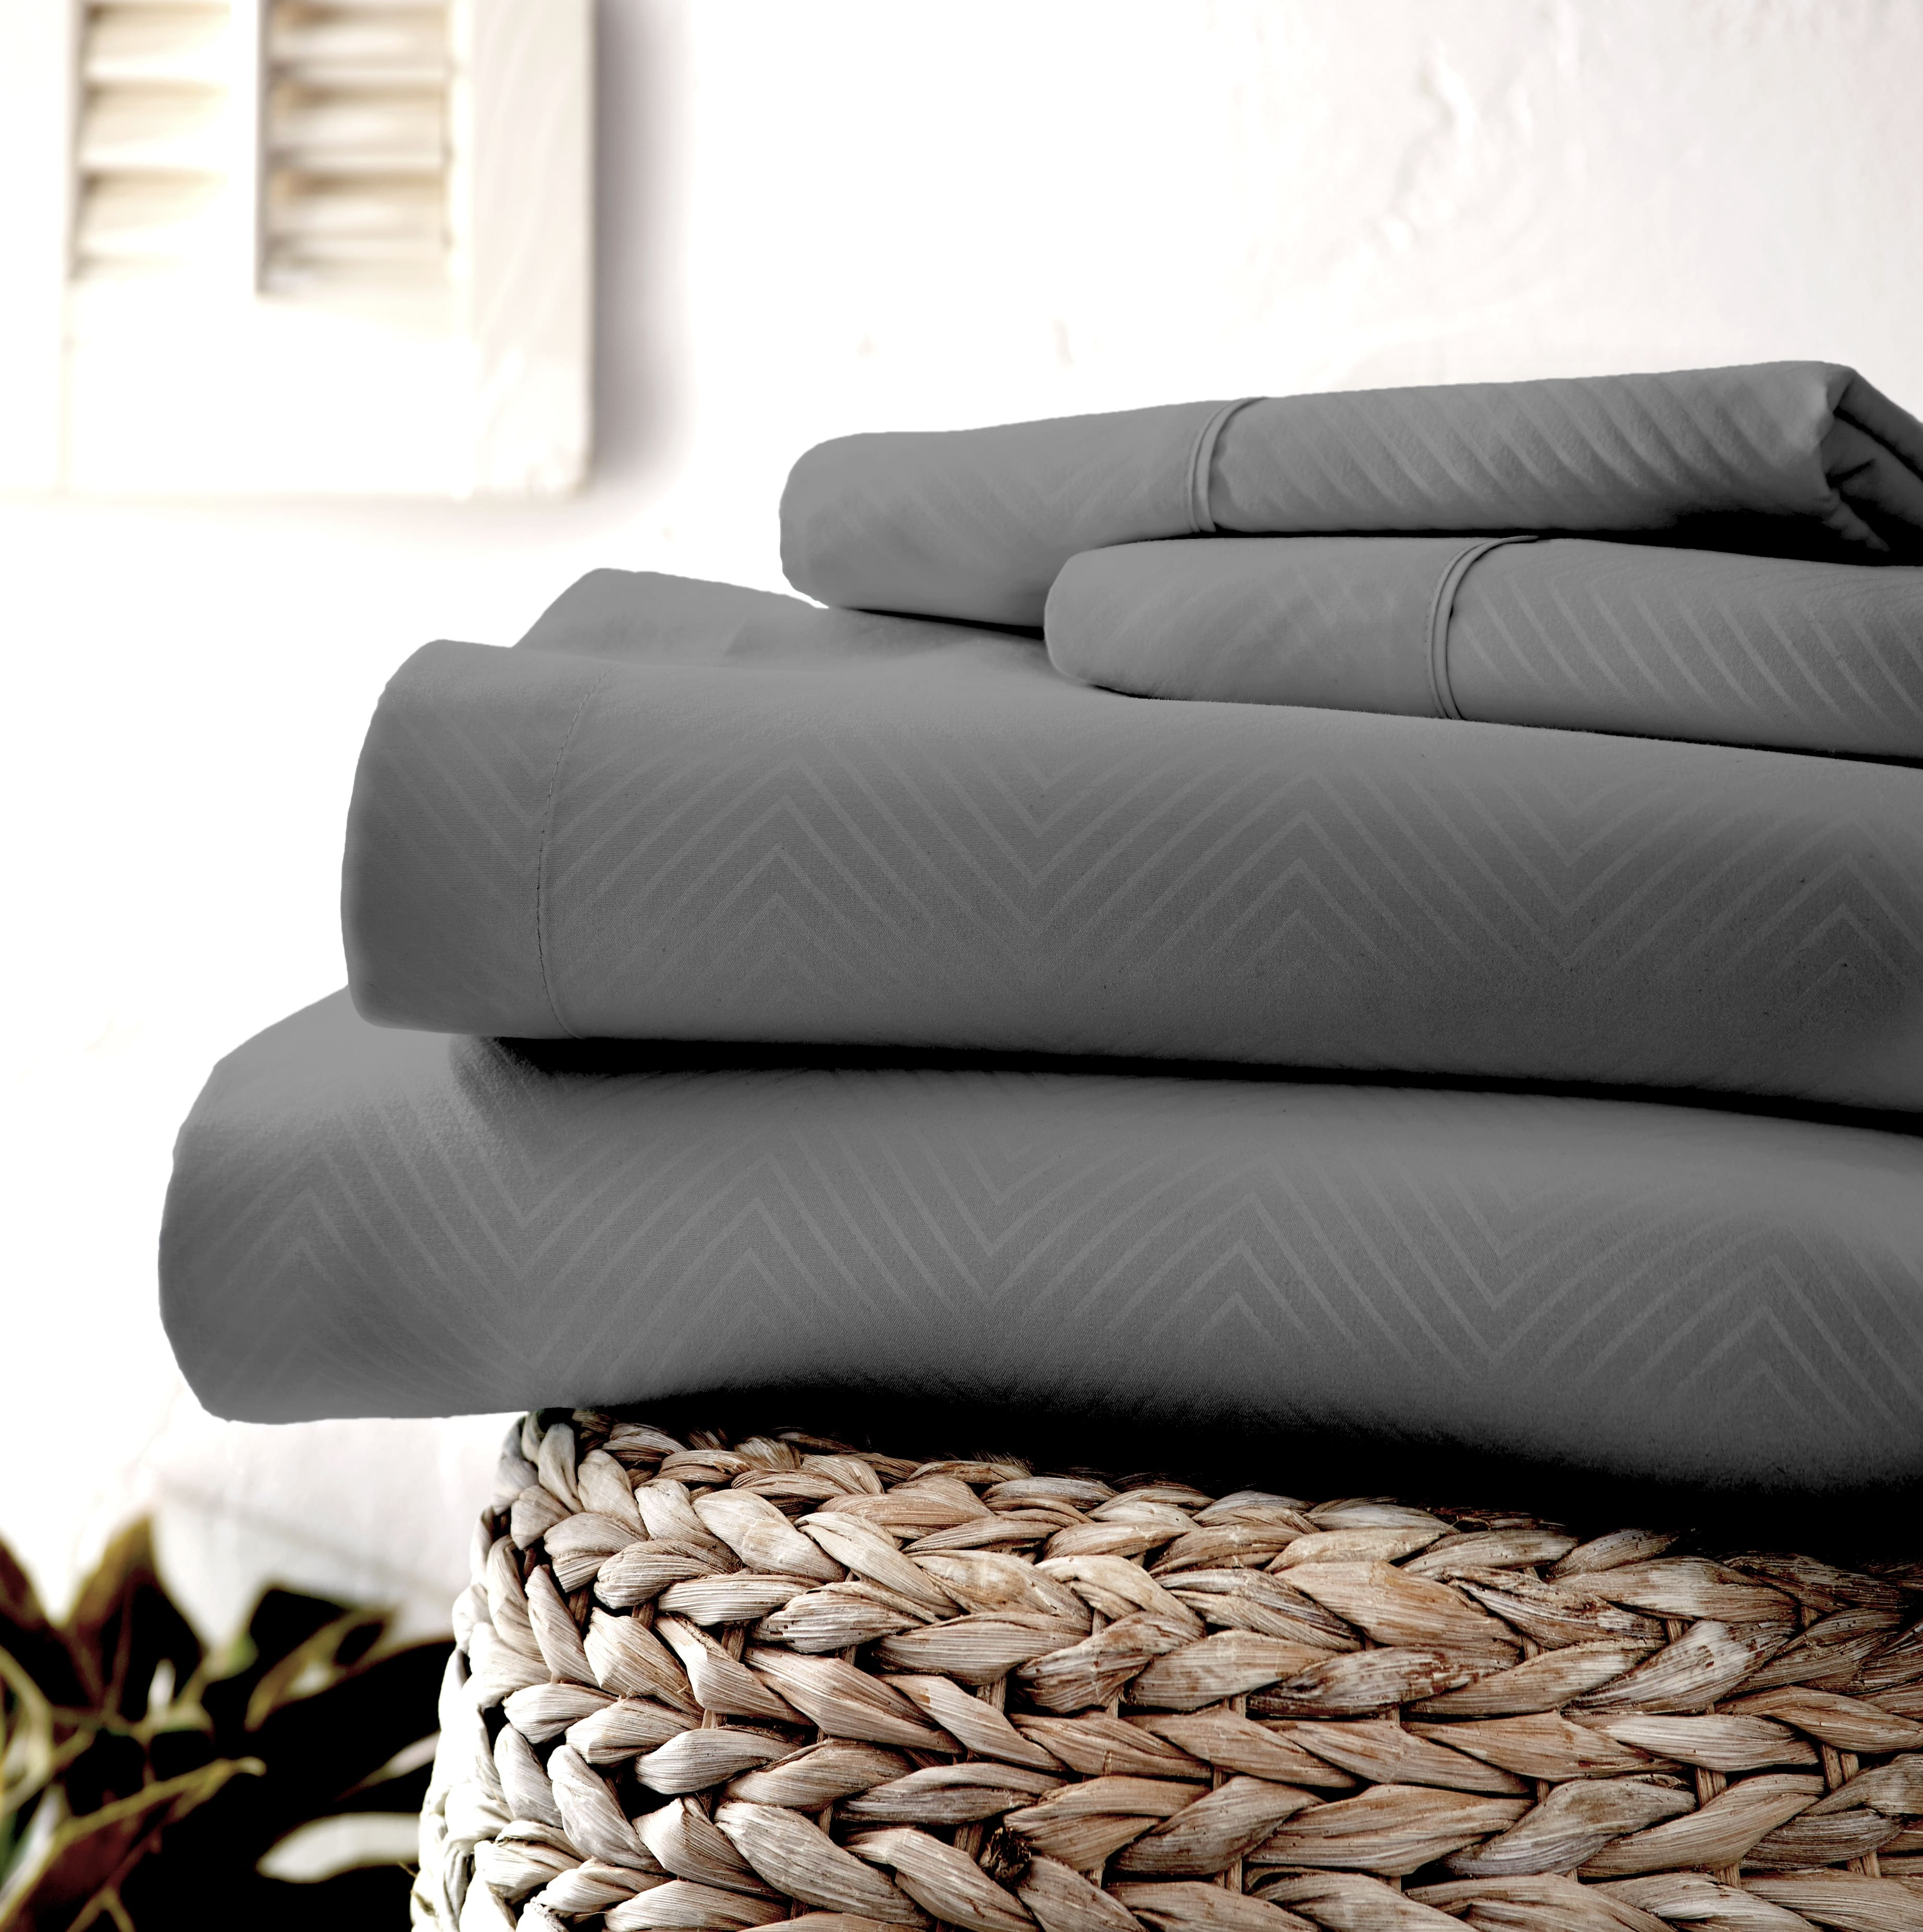 Linens & Hutch Ultra Soft Embossed 4 Piece Sheet Set: Starting at $19.60 + Free Shipping!